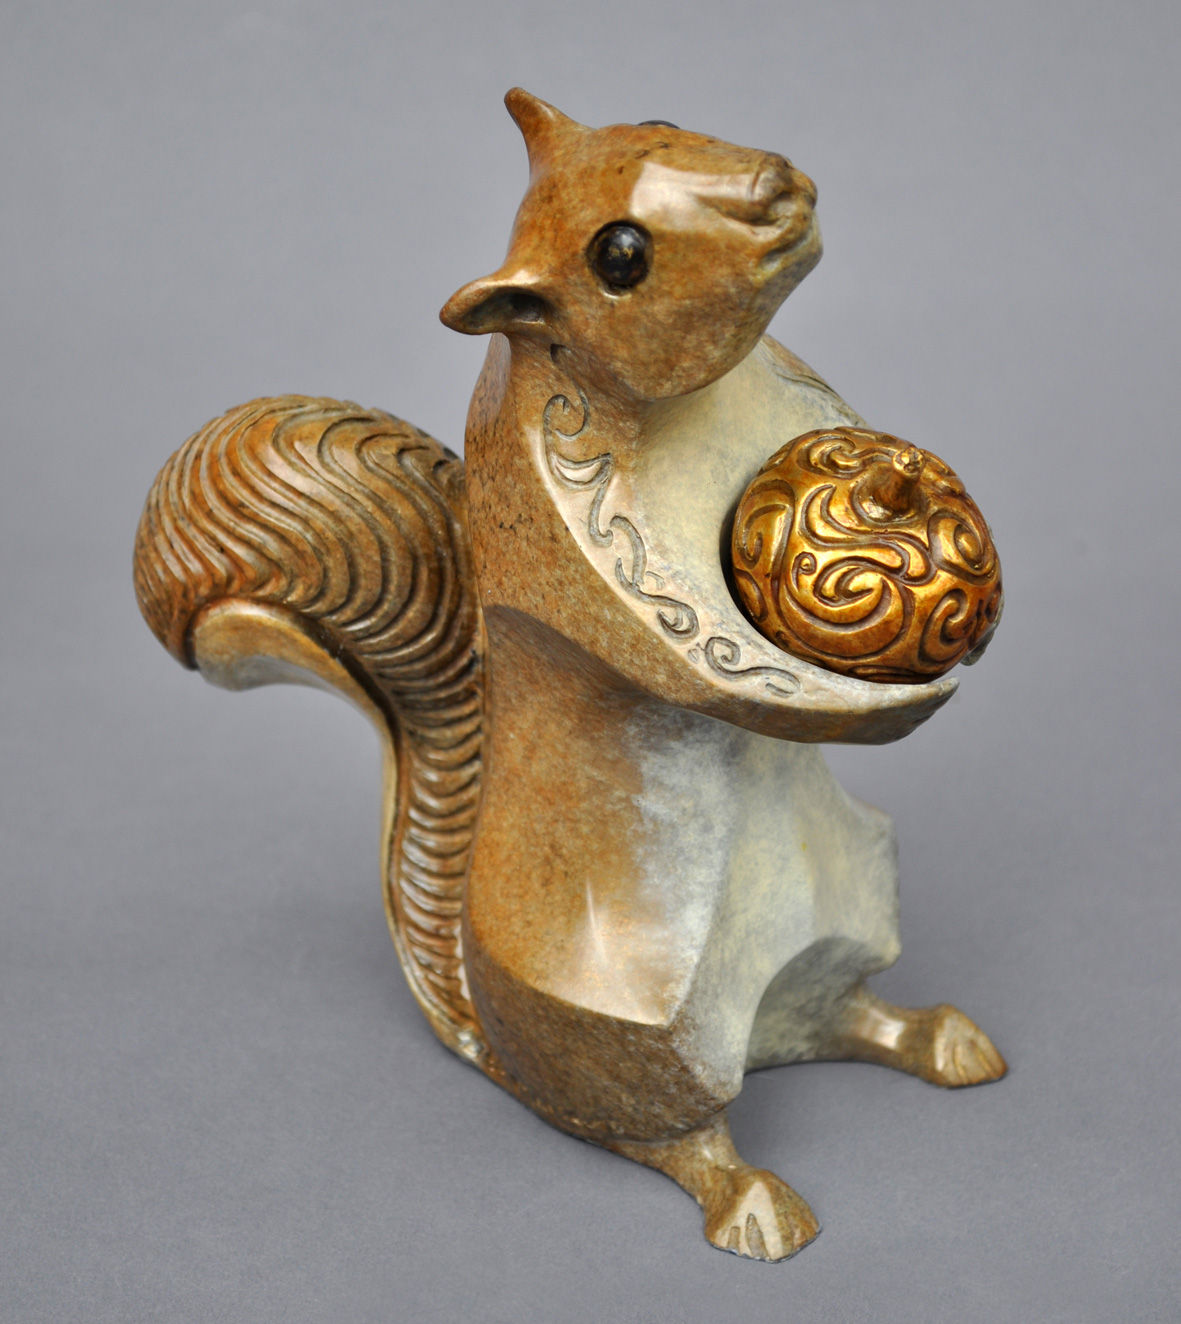 bronze squirrel sculpture john maisano 2